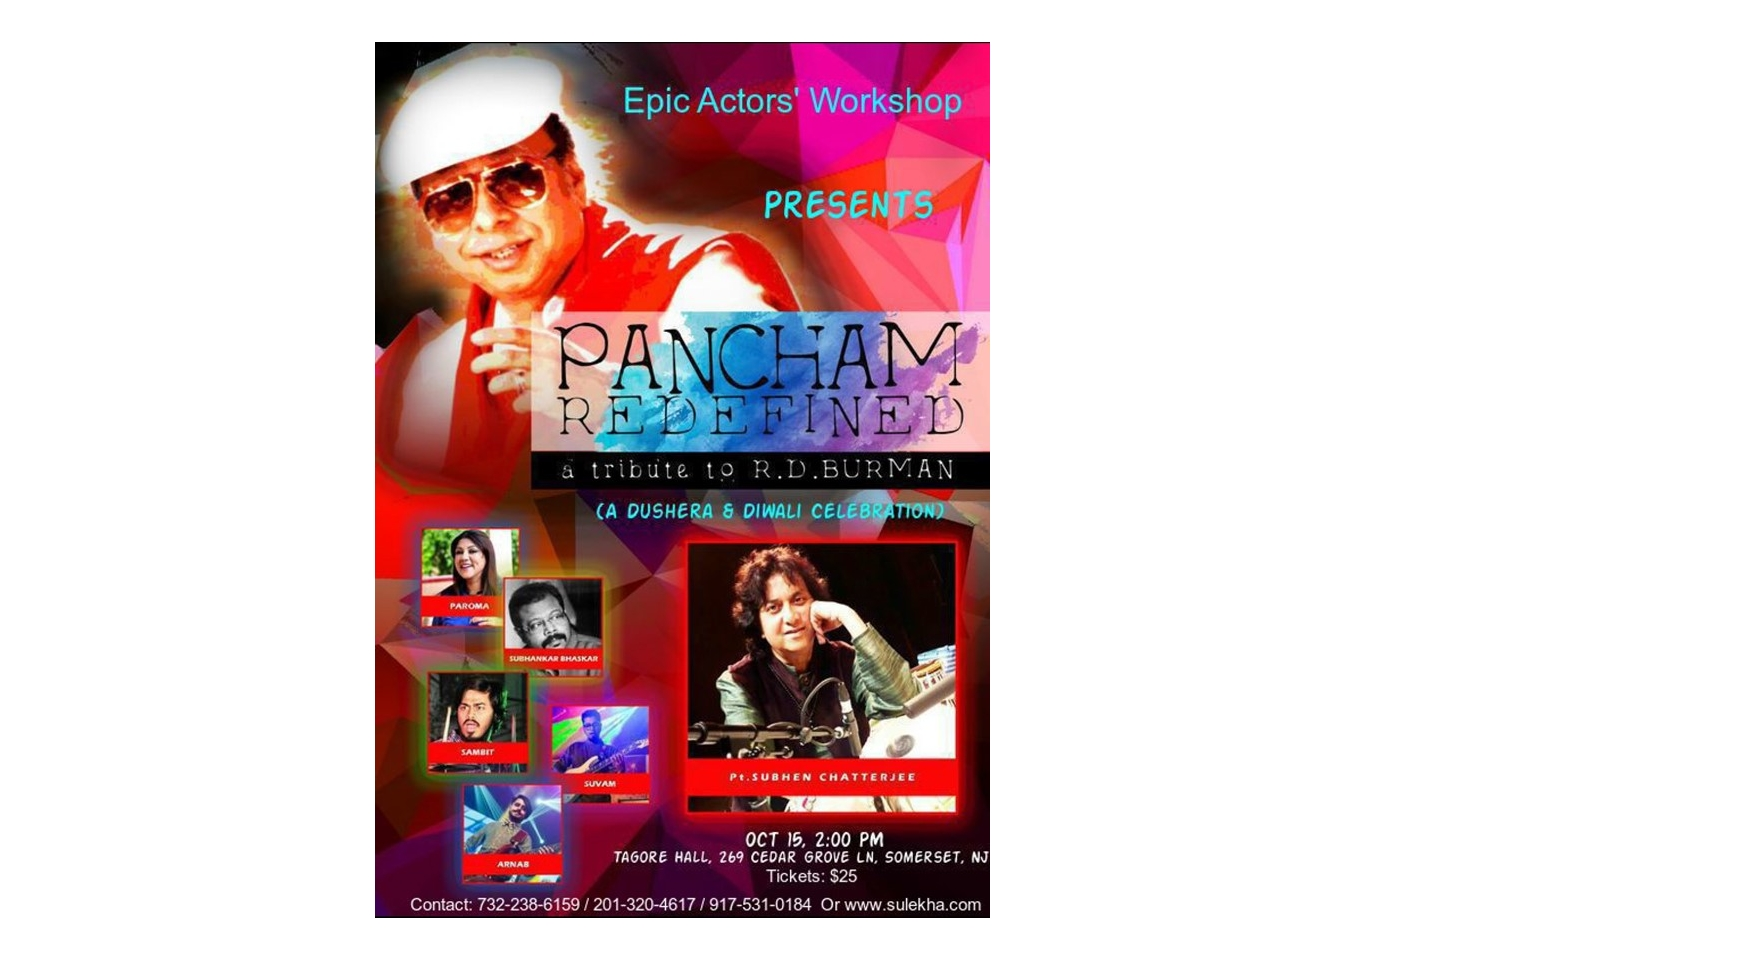 Pancham Redefined - A Tribute to R.D. Burman Buy Tickets Online | Franklin Township , Sun , 2017-10-15 | ThisisShow